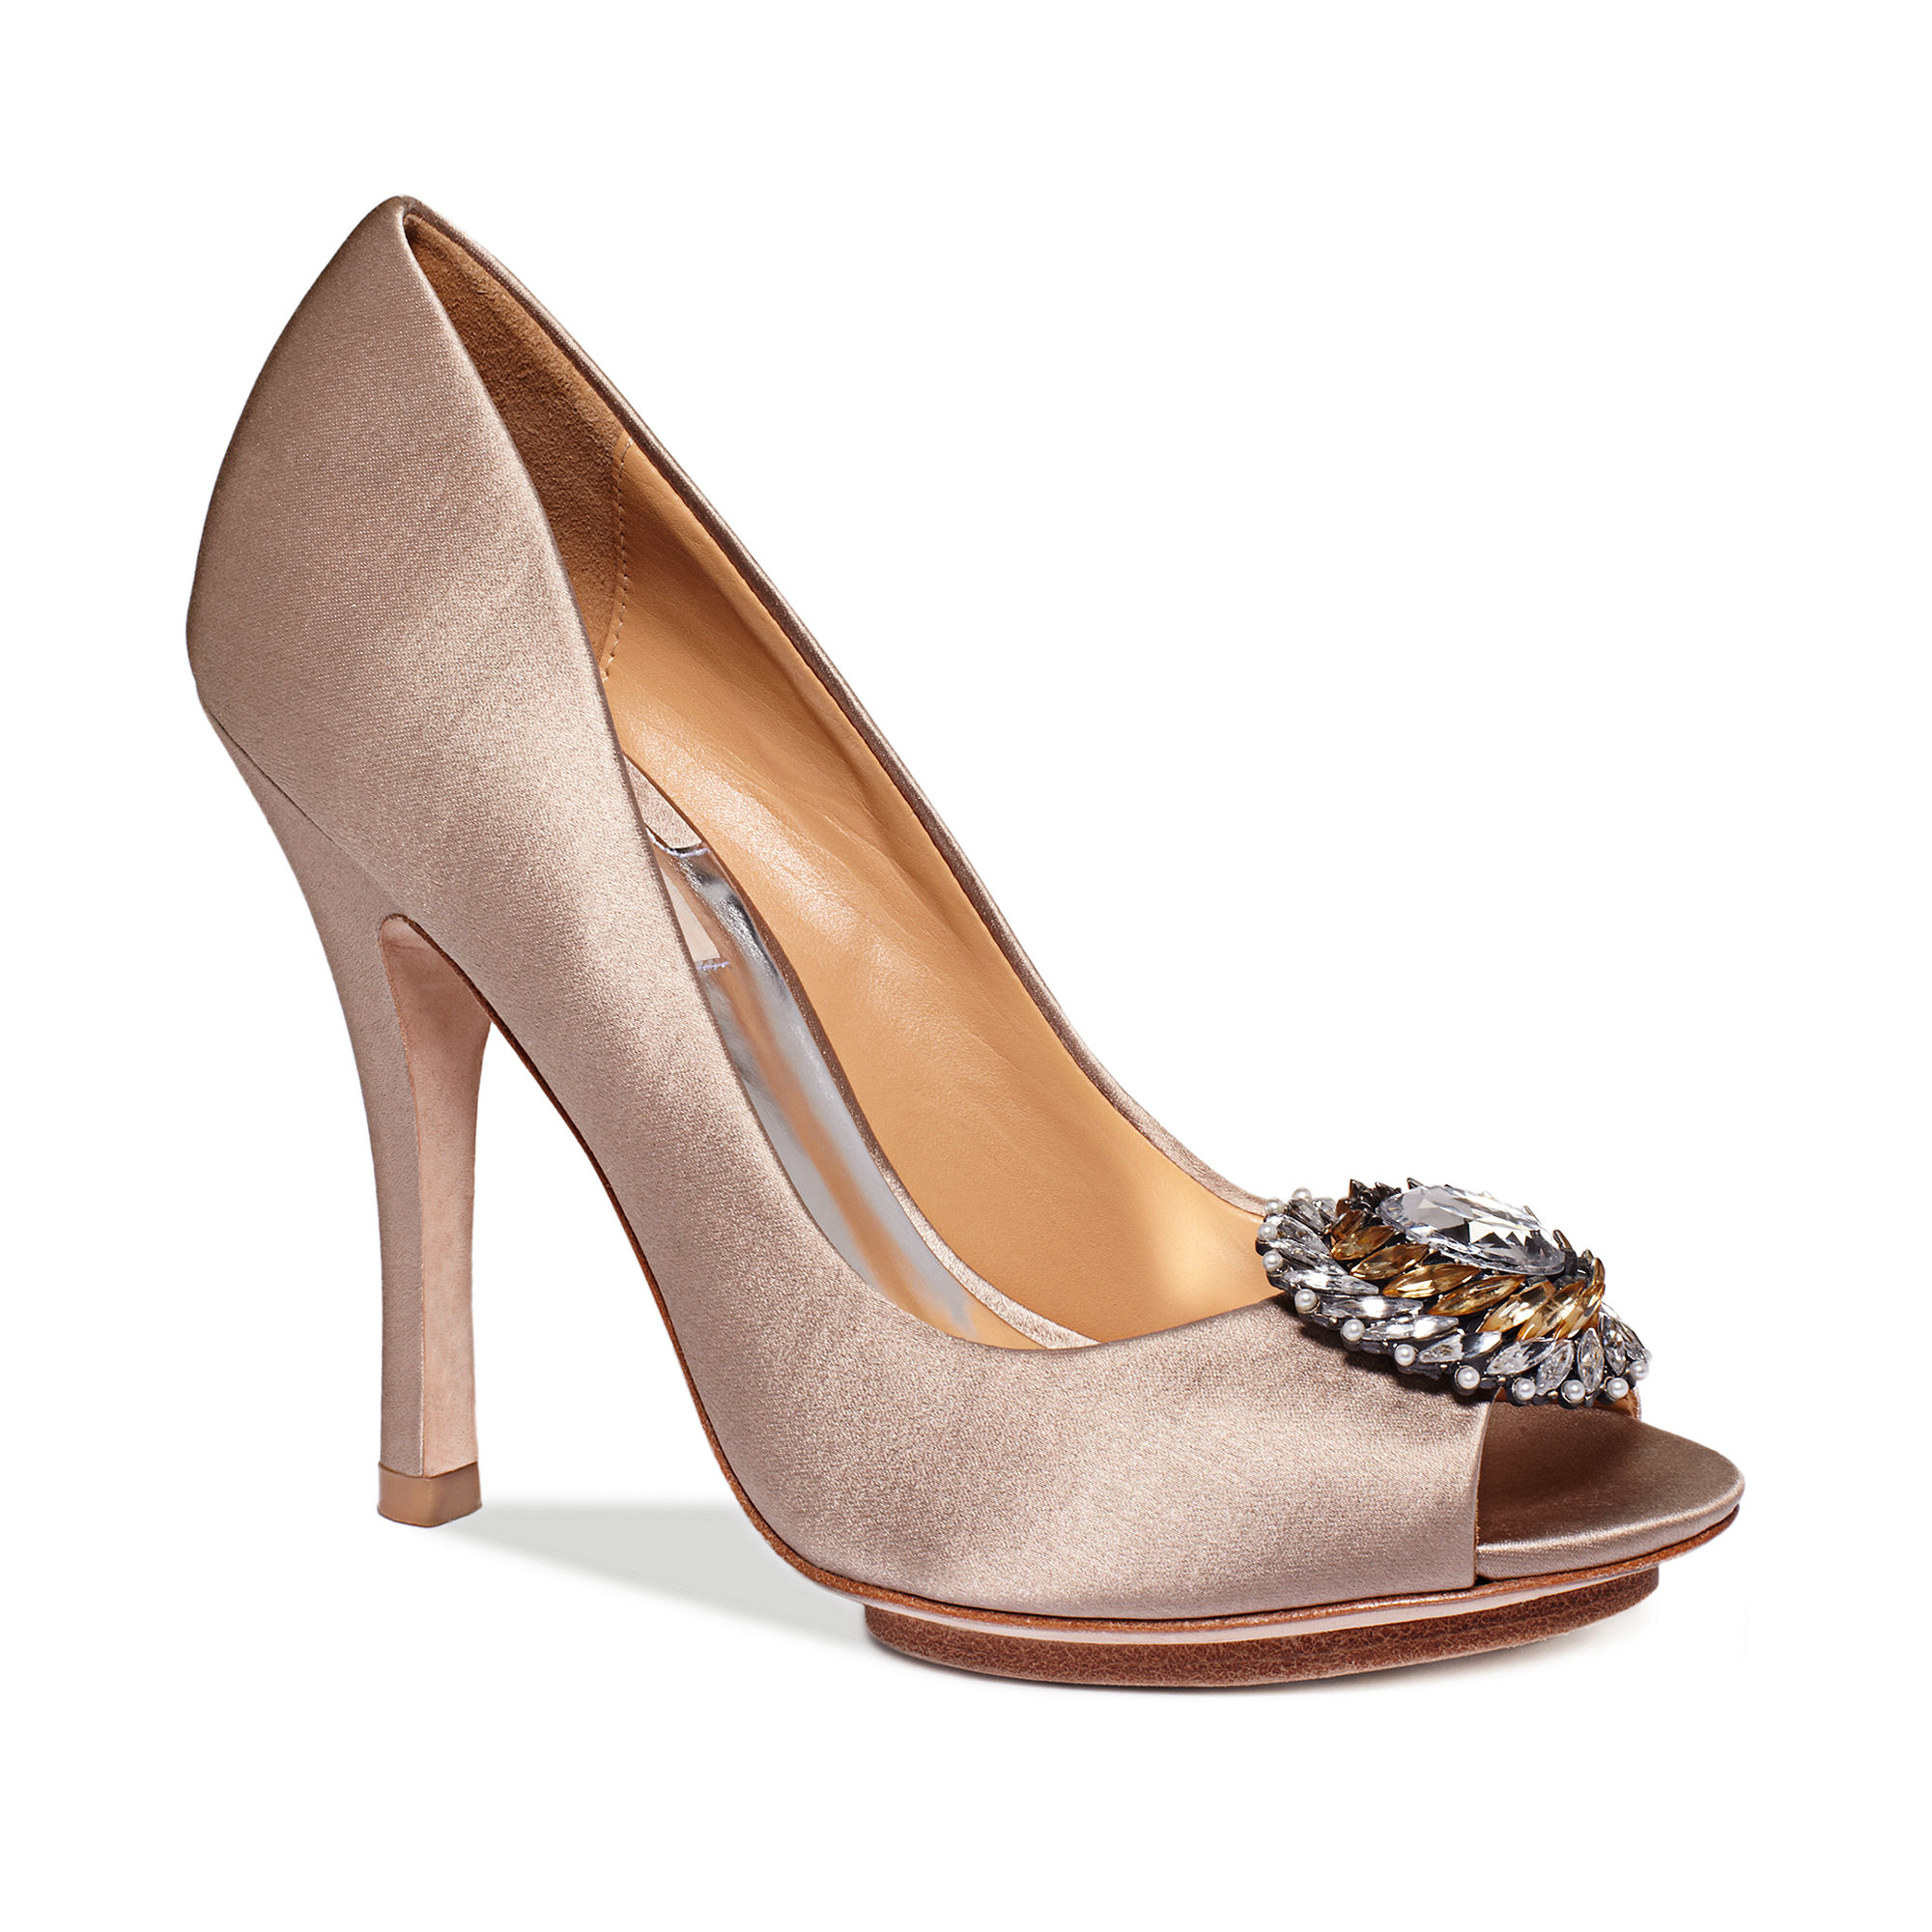 Badgley Mischka Beaming Evening Pumps In Beige (Taupe